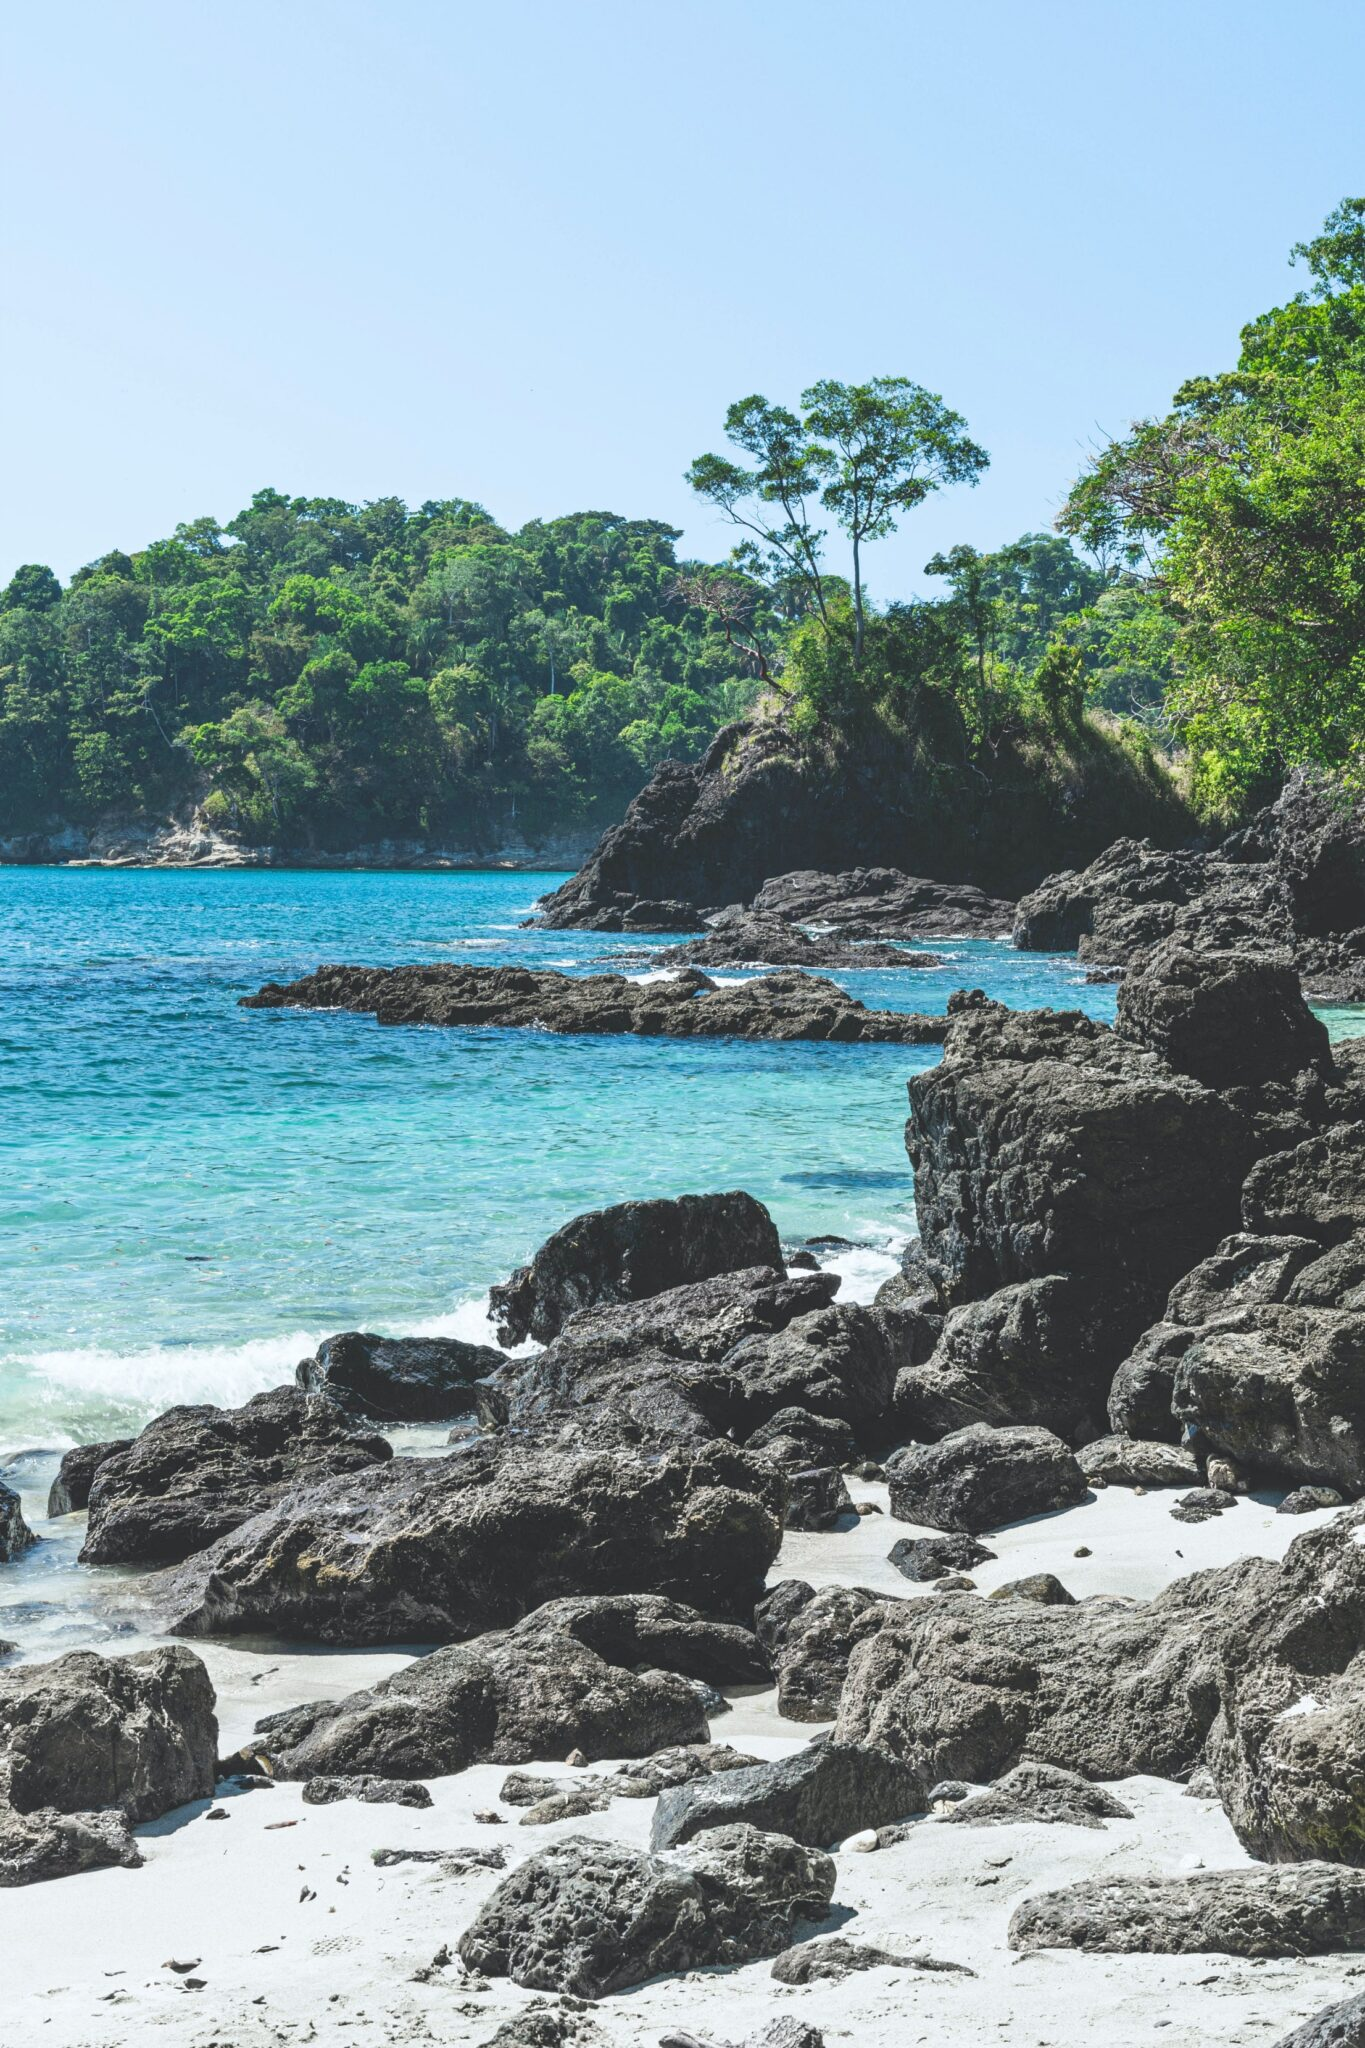 A beautiful beach in Costa Rica, black rocks, white sands, and blue water.